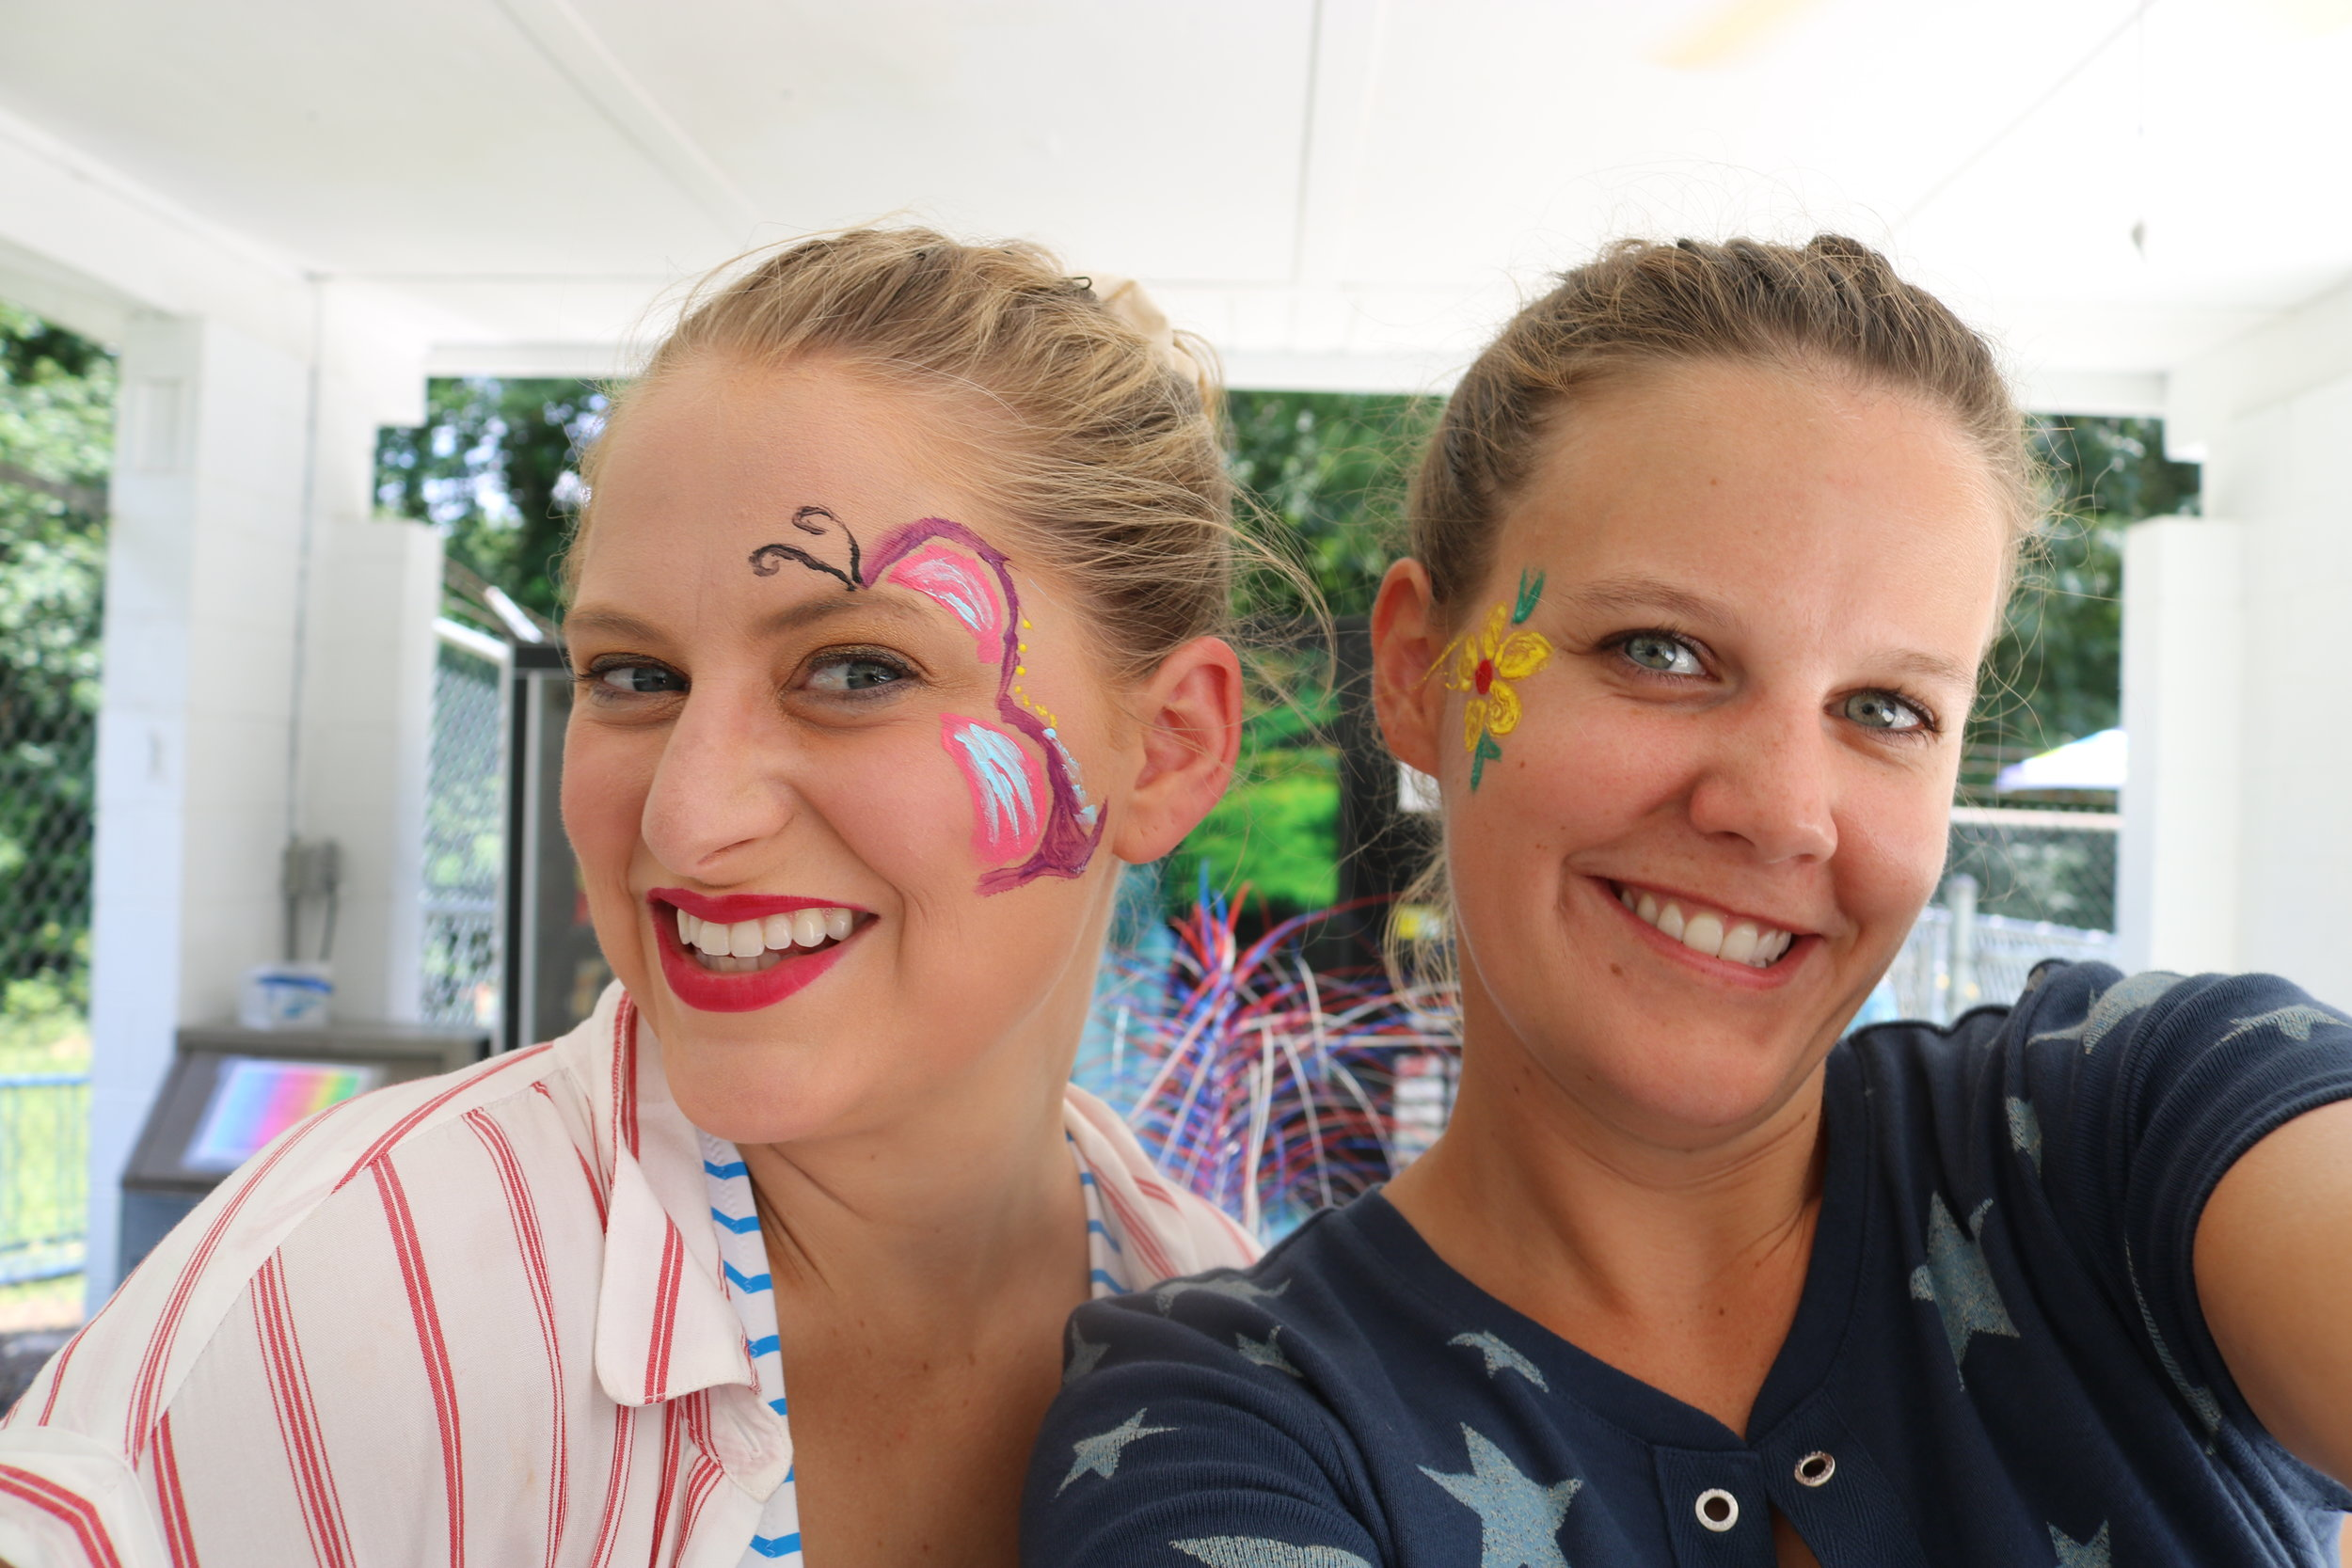 My wife and her best friend had a great time at the face-painting station.